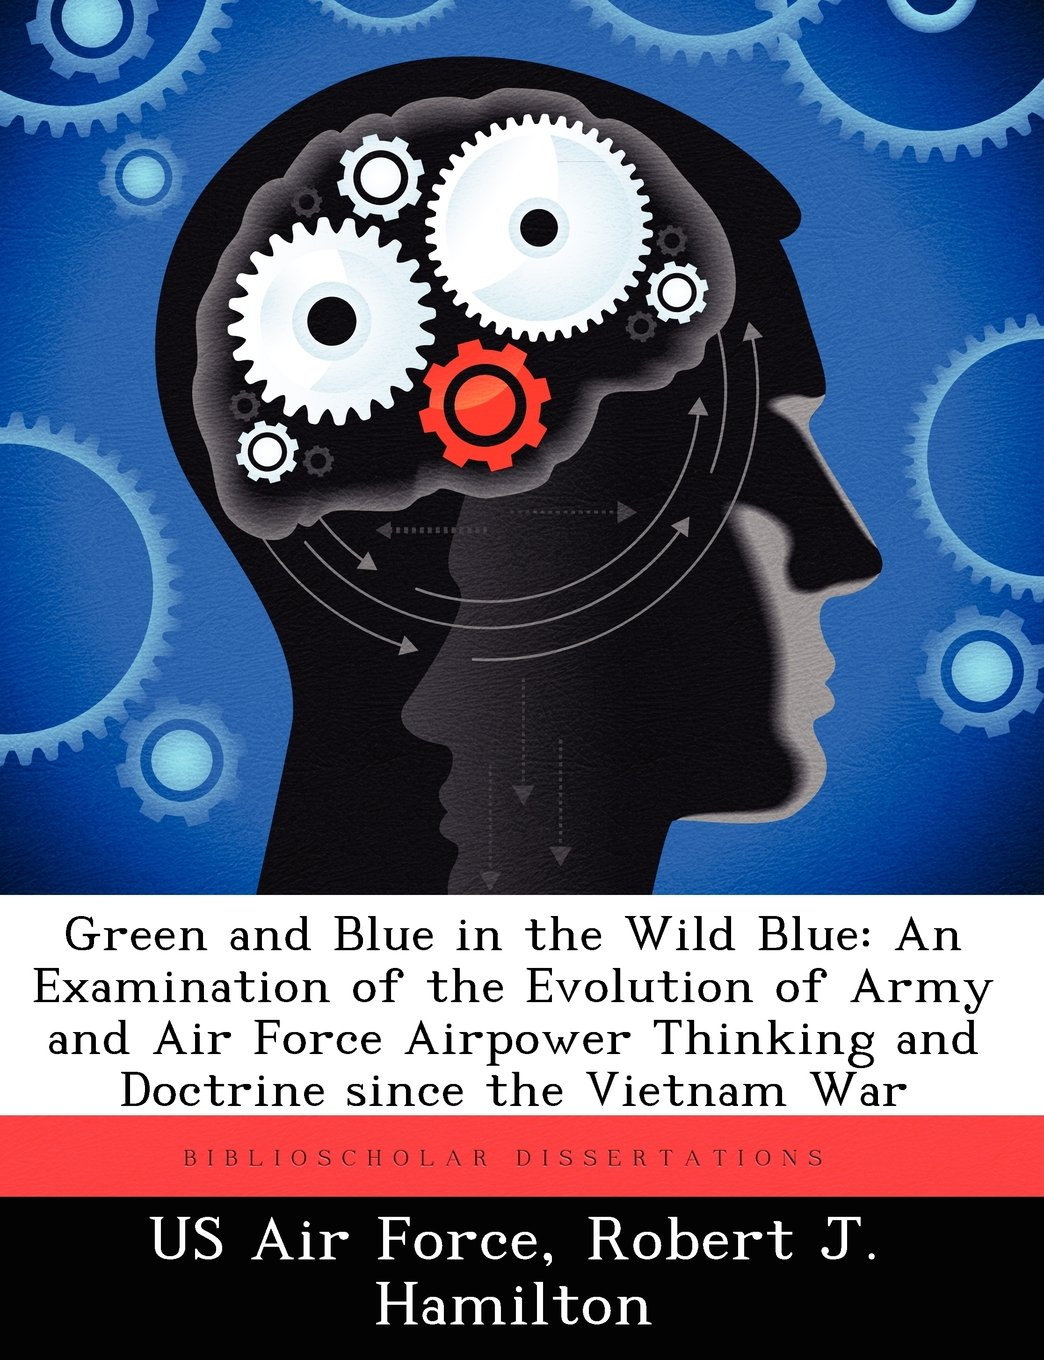 Green and Blue in the Wild Blue: An Examination of the Evolution of Army and Air Force Airpower Thinking and Doctrine since the Vietnam War pdf